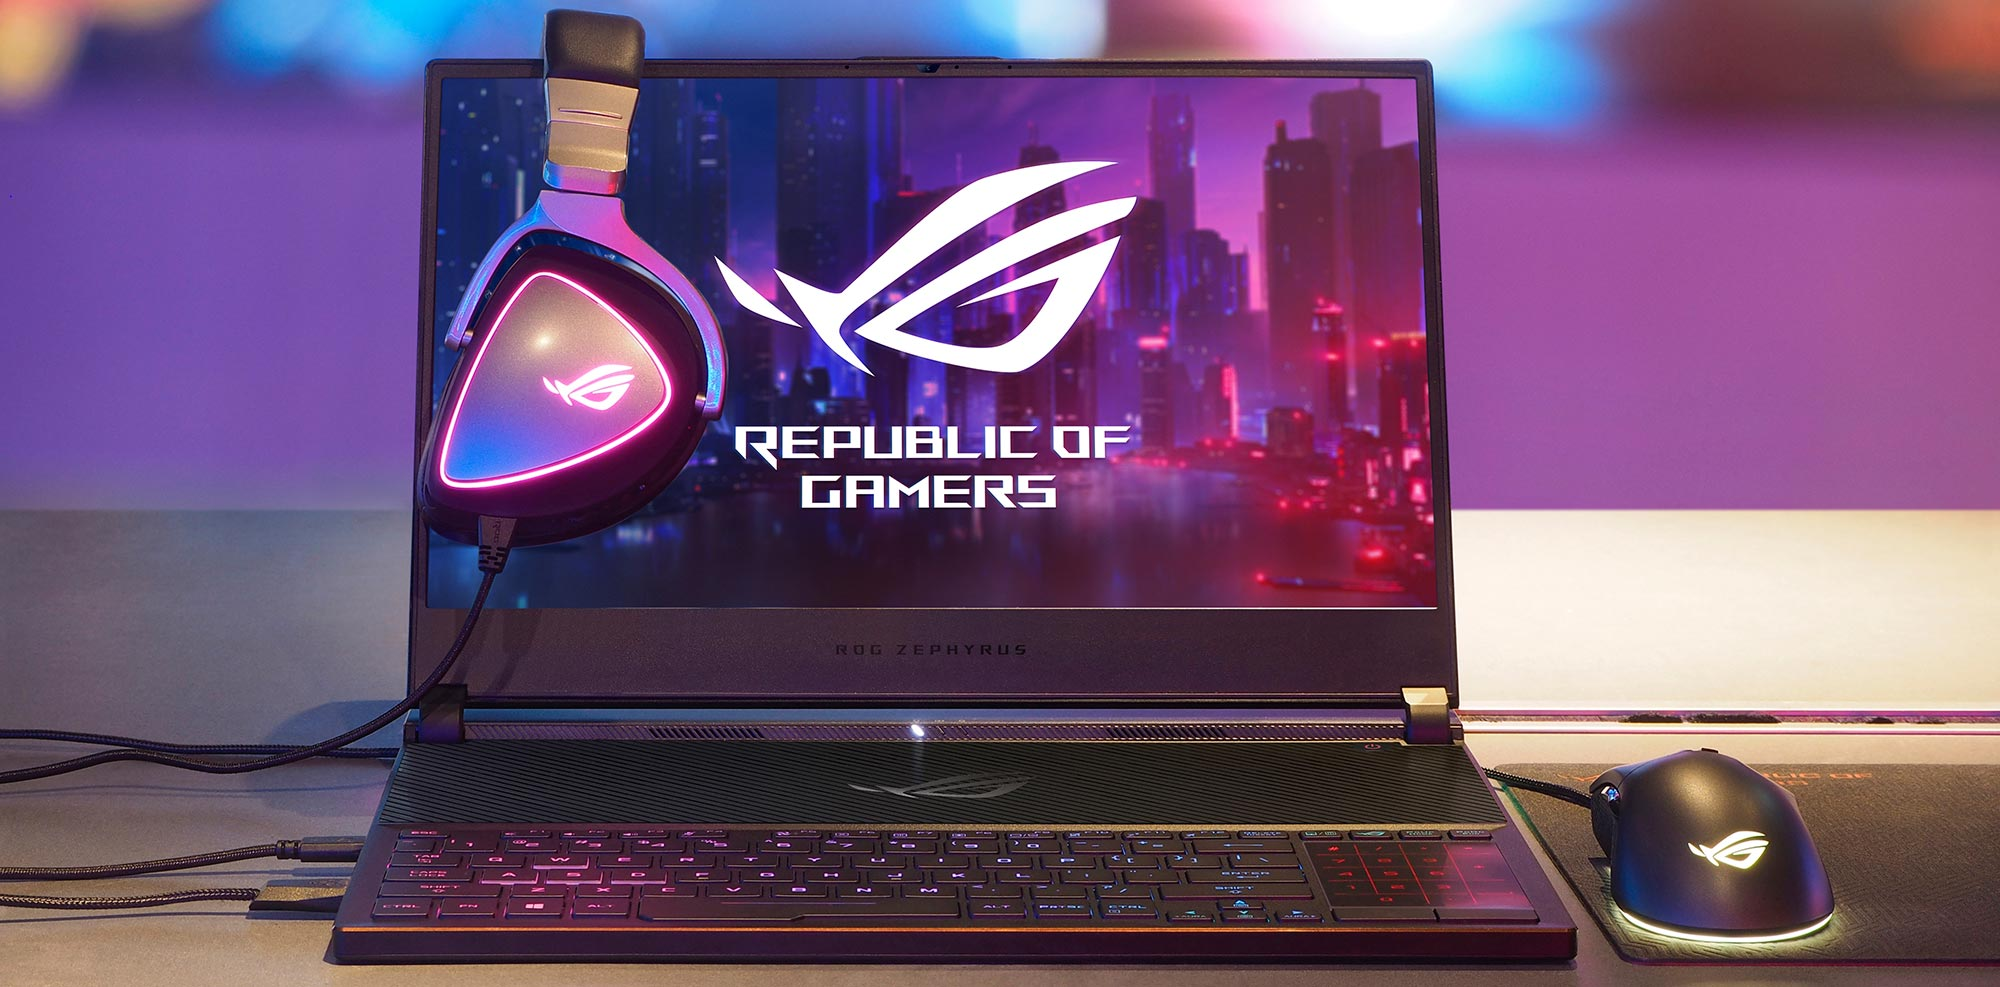 HDR, 240Hz, and 4K panels reinforce ROG's leadership with